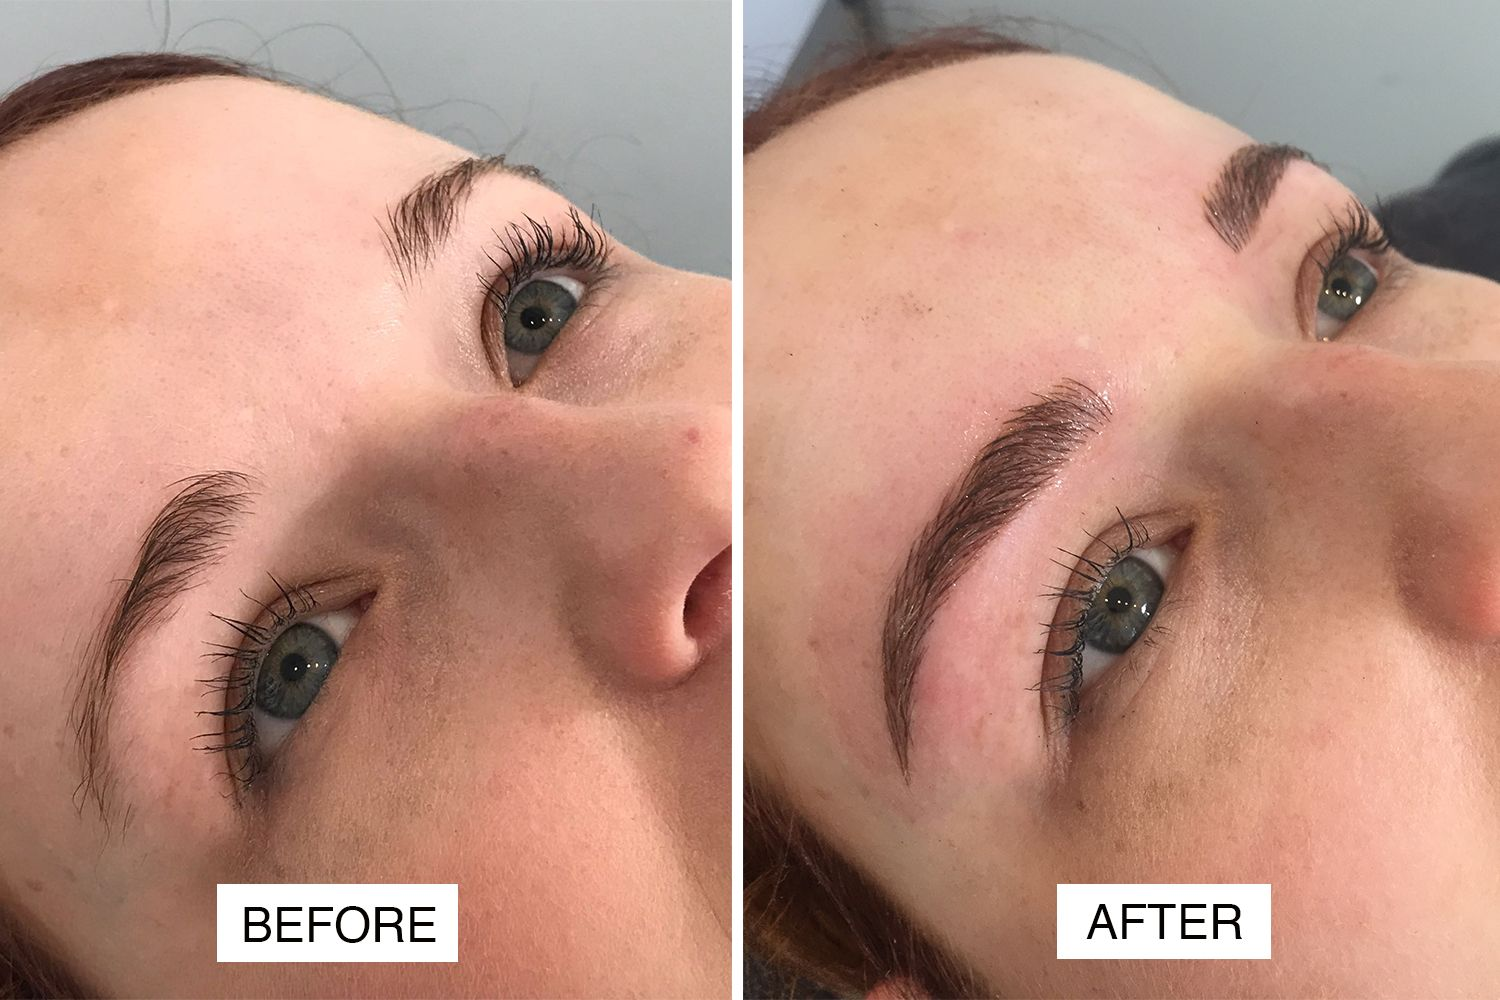 Microblading - Everything You Need To Know About The Semi-Permanent ...